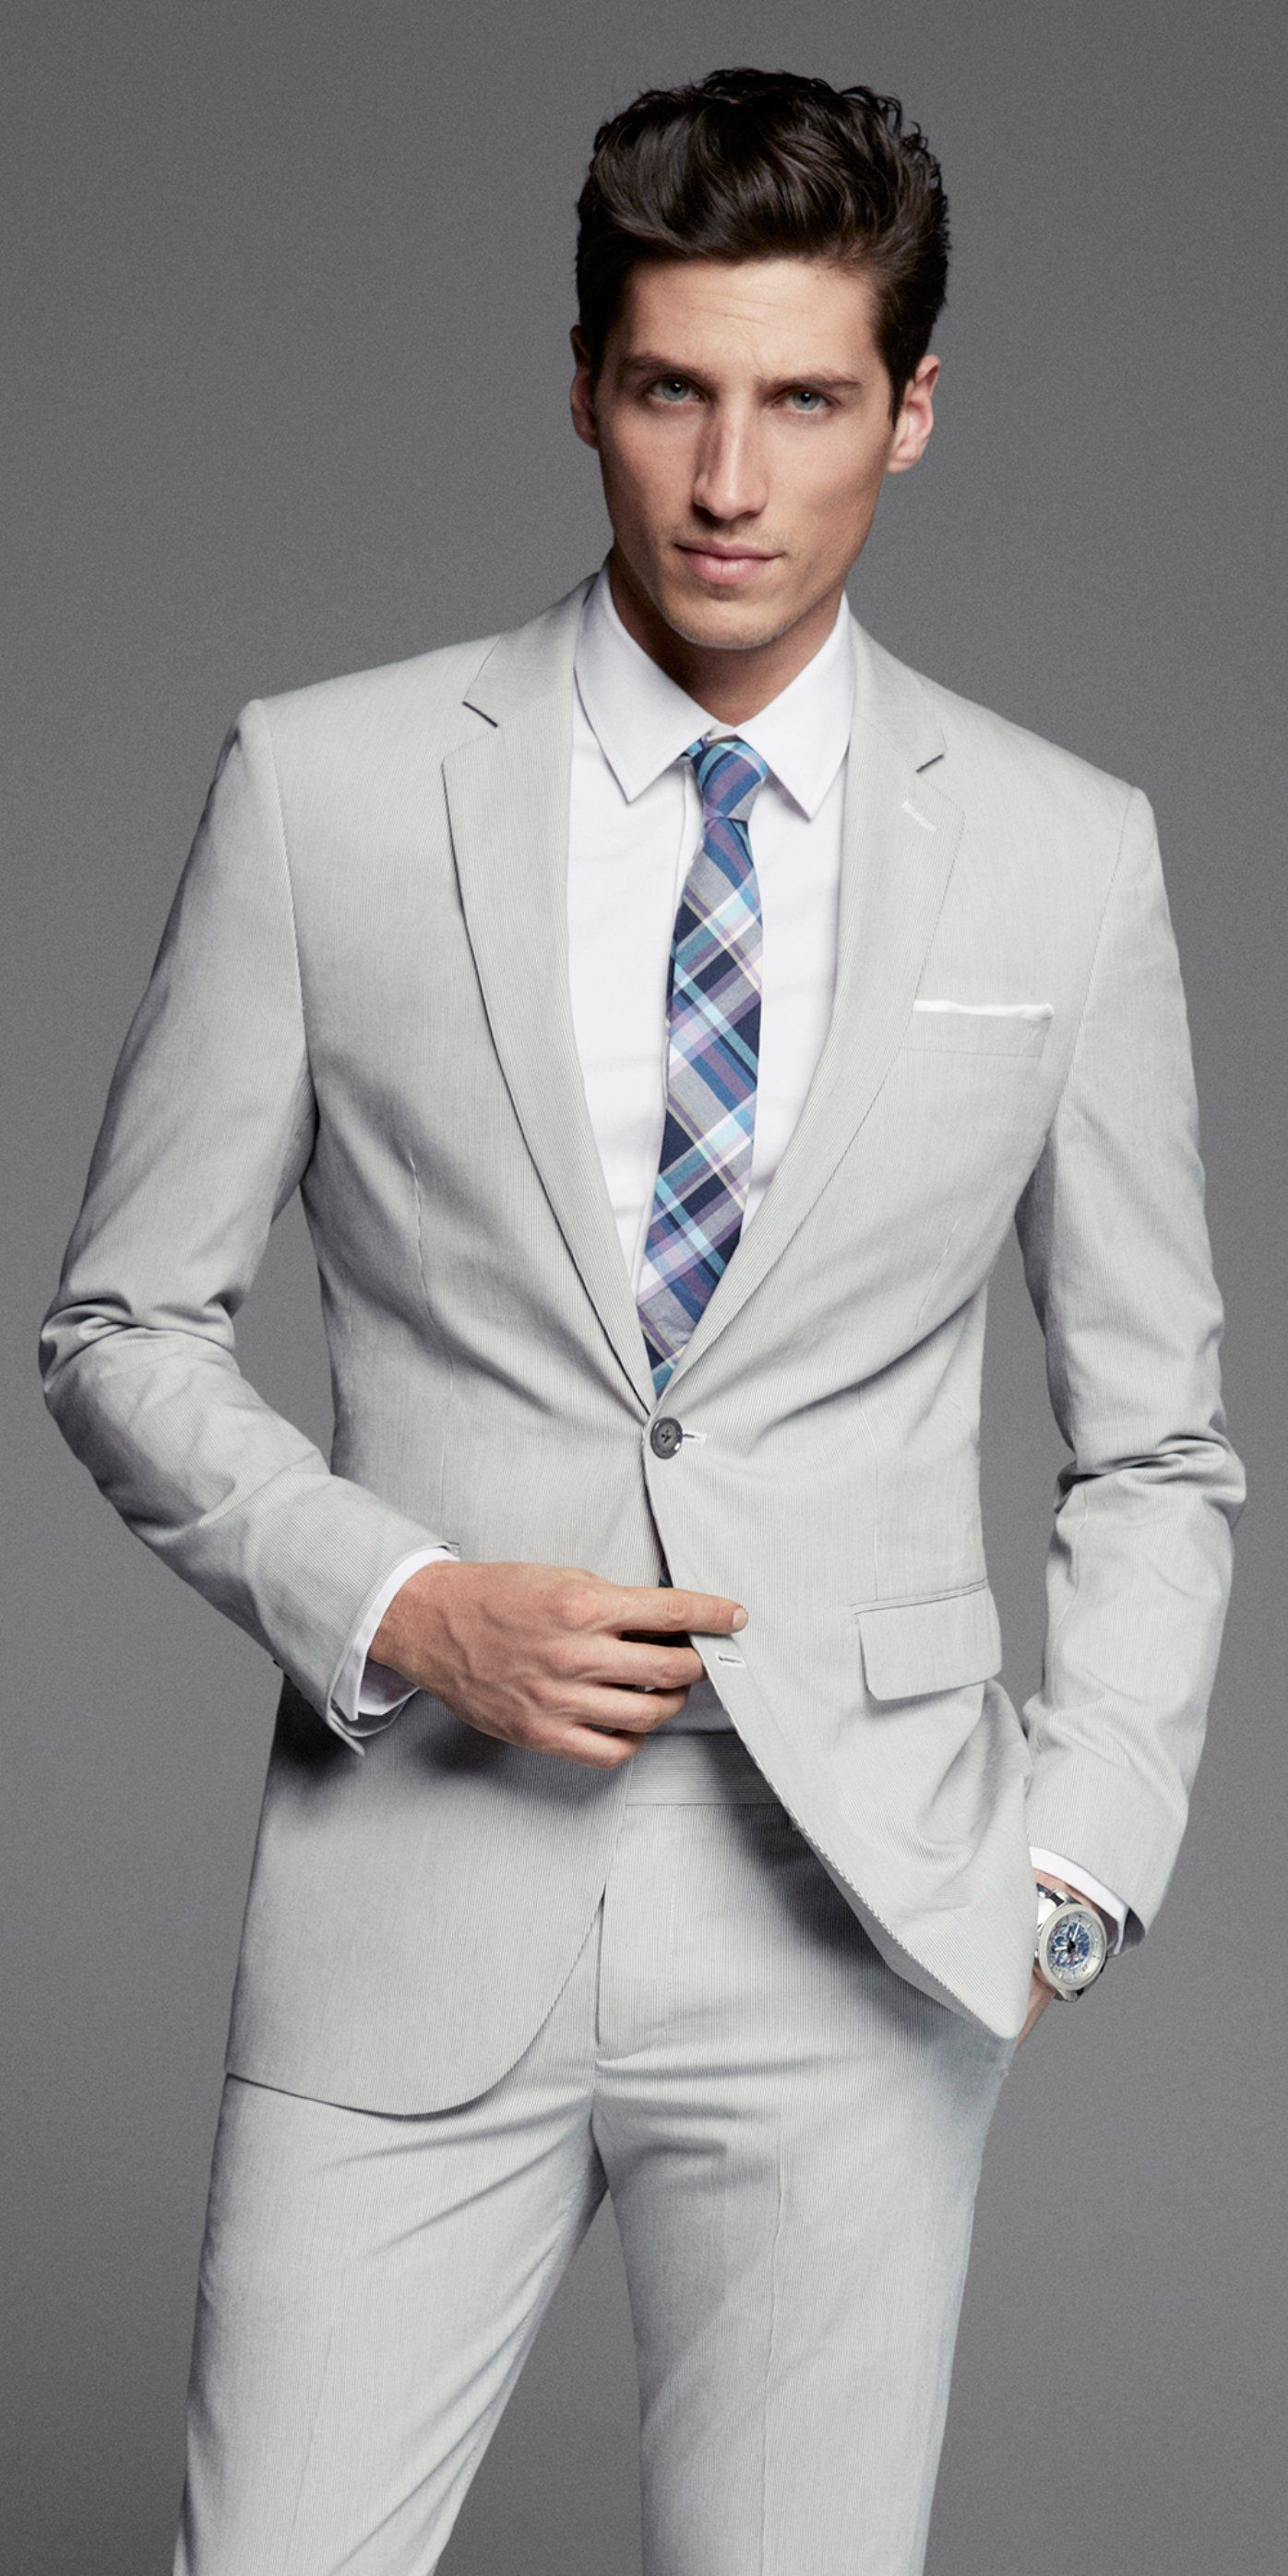 1000  images about Casual/Dress Wear on Pinterest | Blazers, Gray